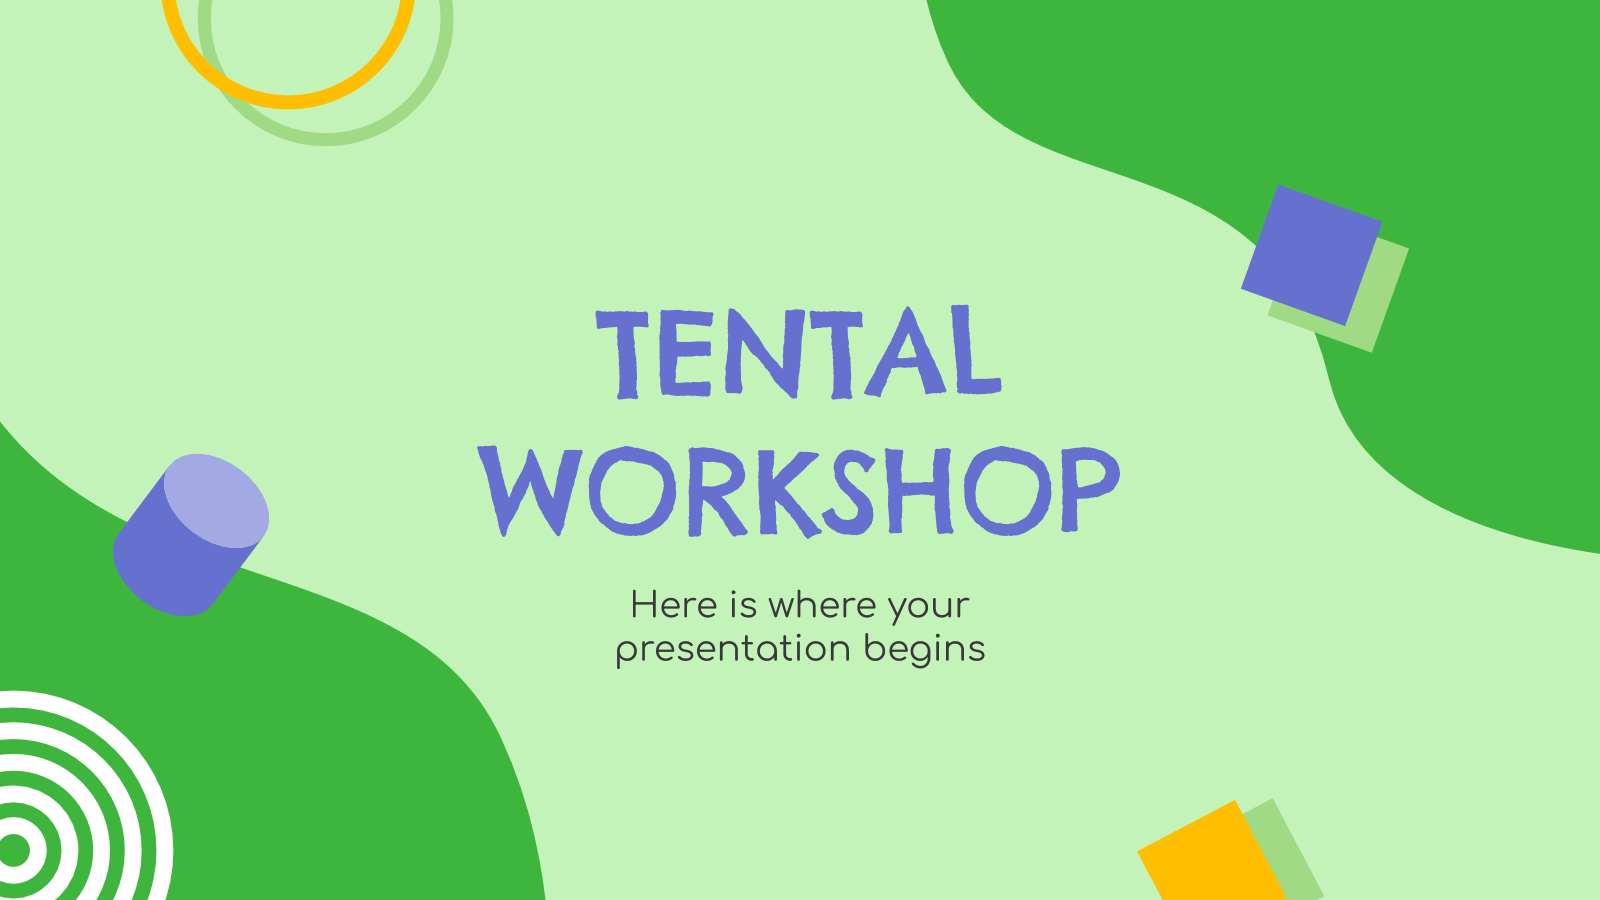 Tental Workshop presentation template